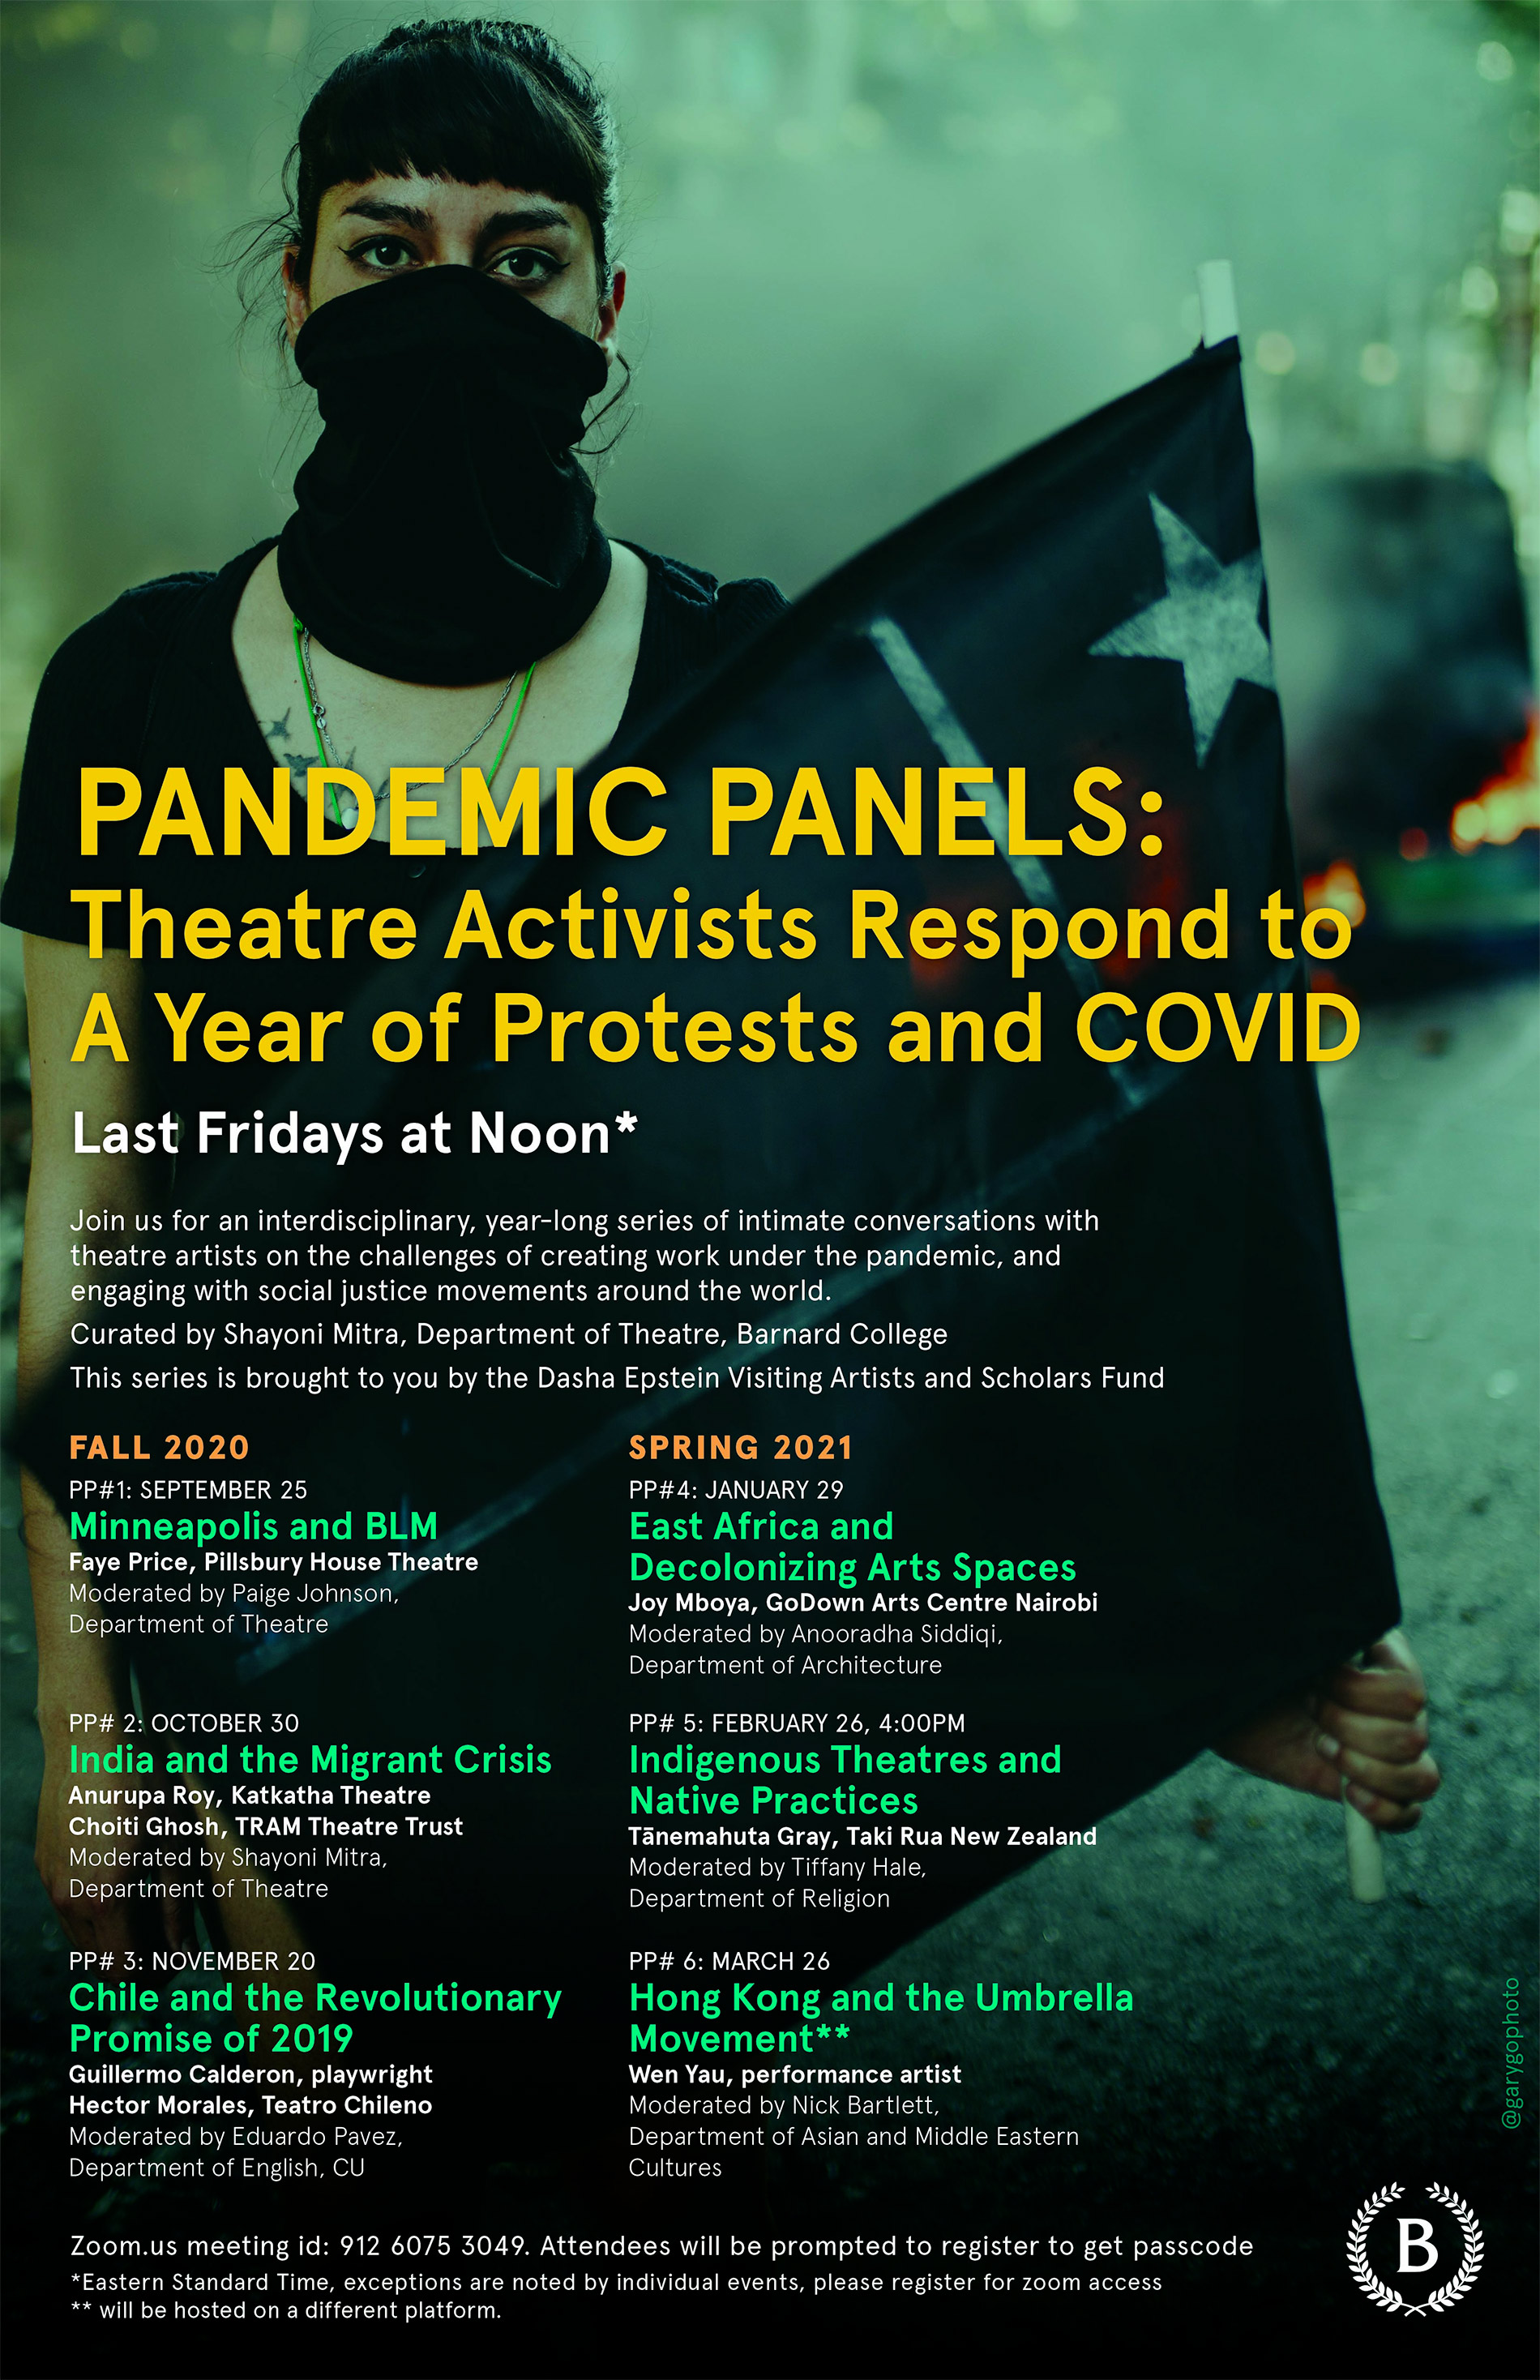 Pandemic panels event poster